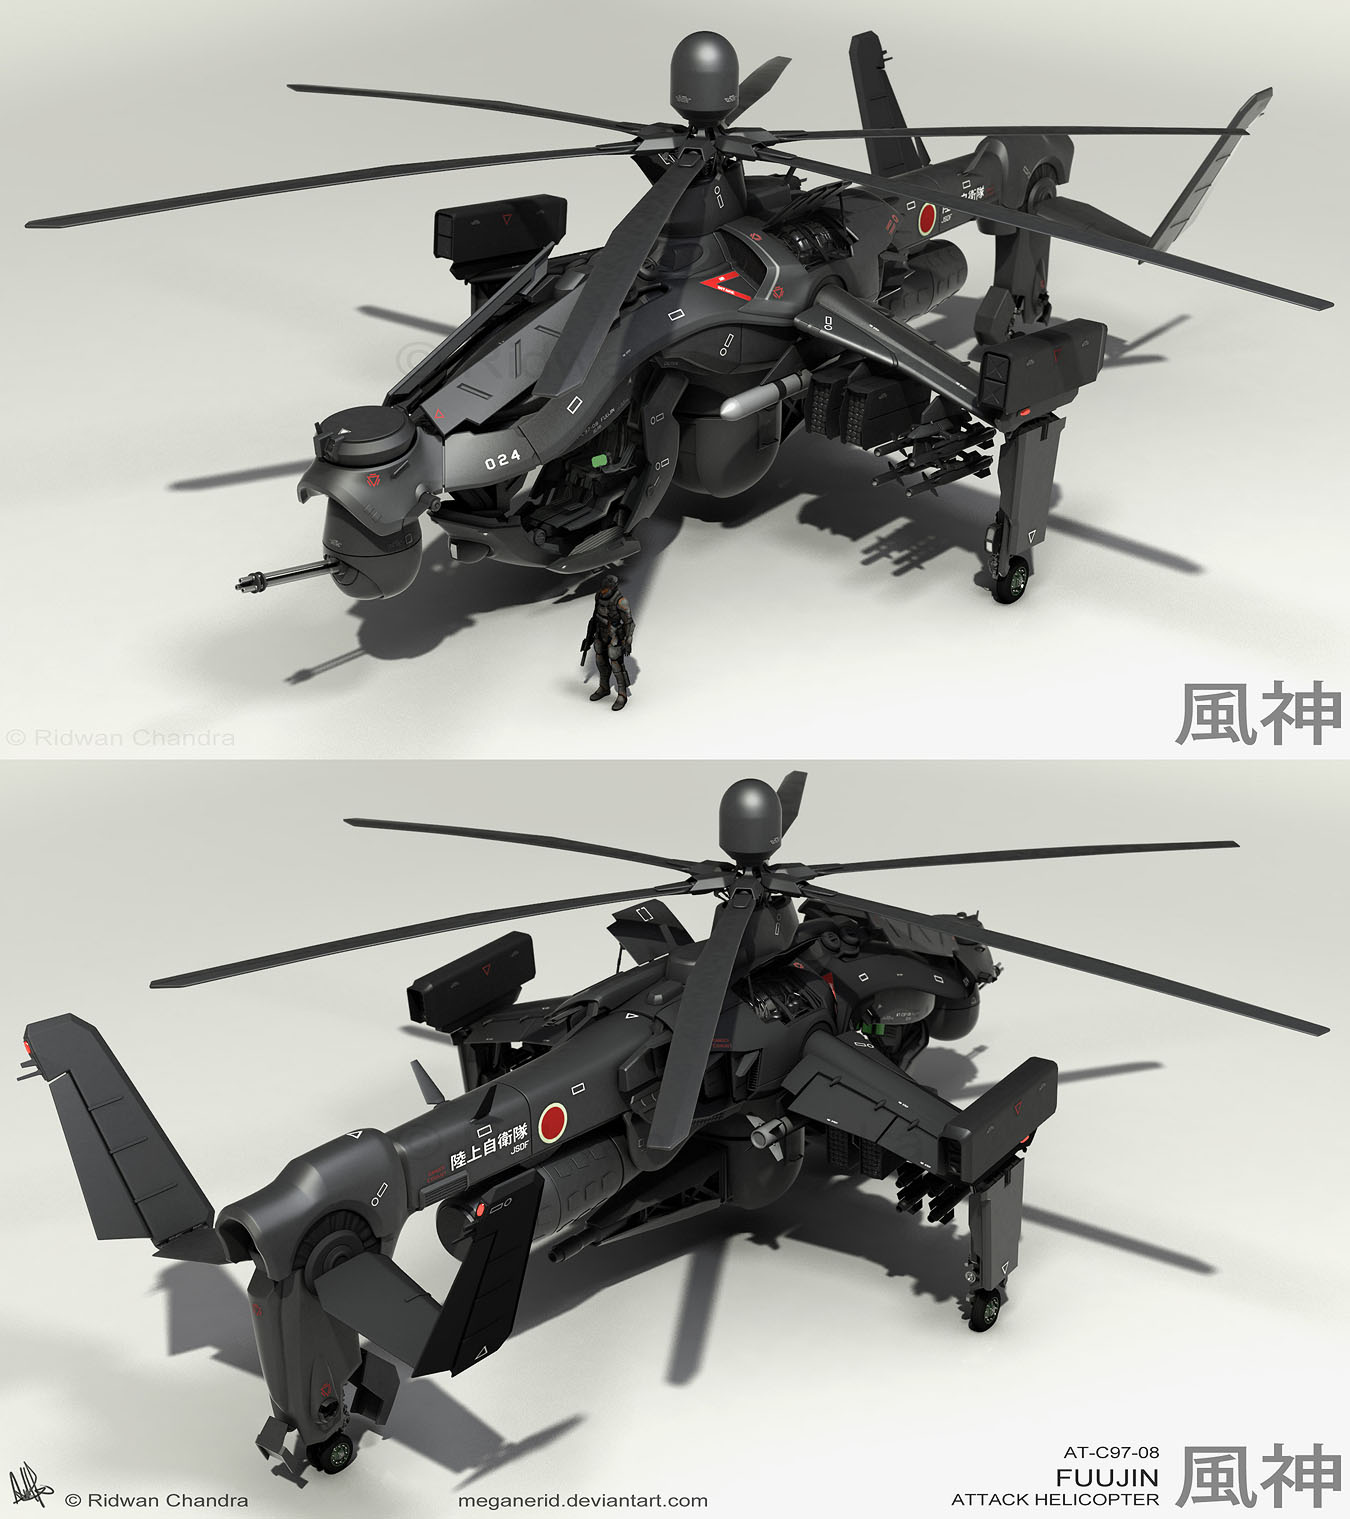 Fuujin Attack Helicopter Renders 3